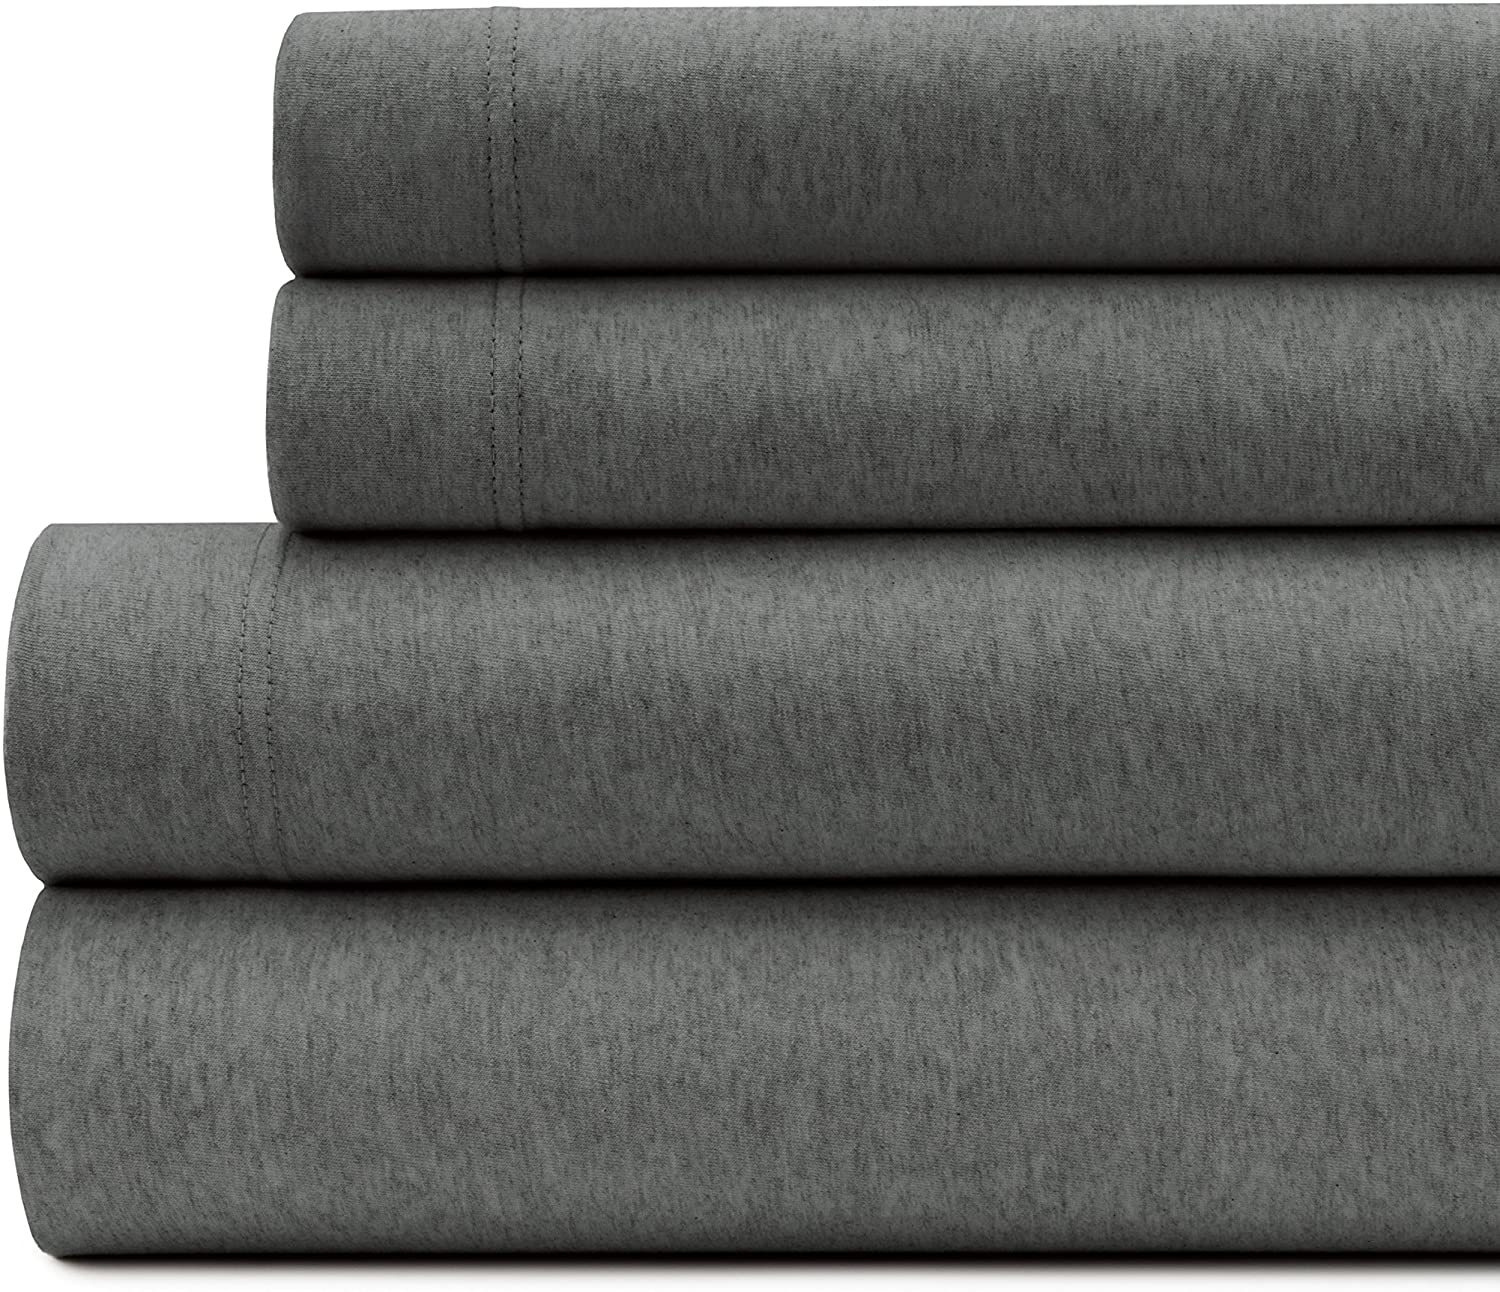 Briarwood Home Queen Jersey Knit Heather Bed Sheet Set - 4 Pc Soft & Luxurious, 100% Cotton Bedding - Breathable, Comfortable & Cozy - T-Shirt Soft All Season Sheets (Queen, Charcoal)